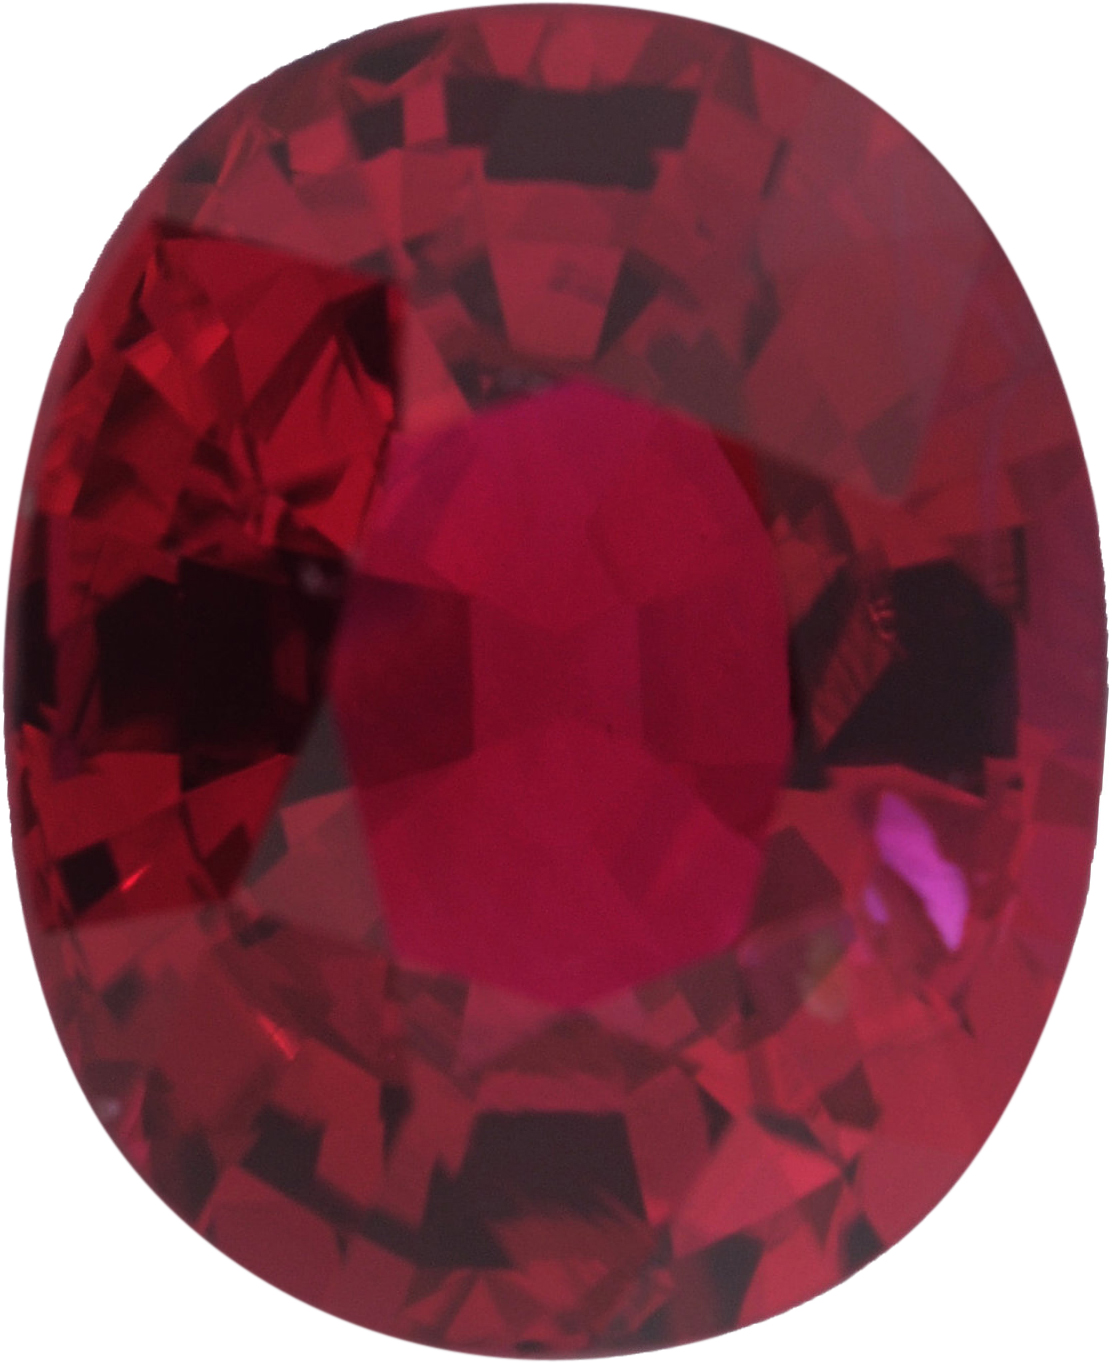 1.11 carats Ruby Loose Gemstone in Antique Cushion Cut, Strong Red, 6.63 x 5.38 mm